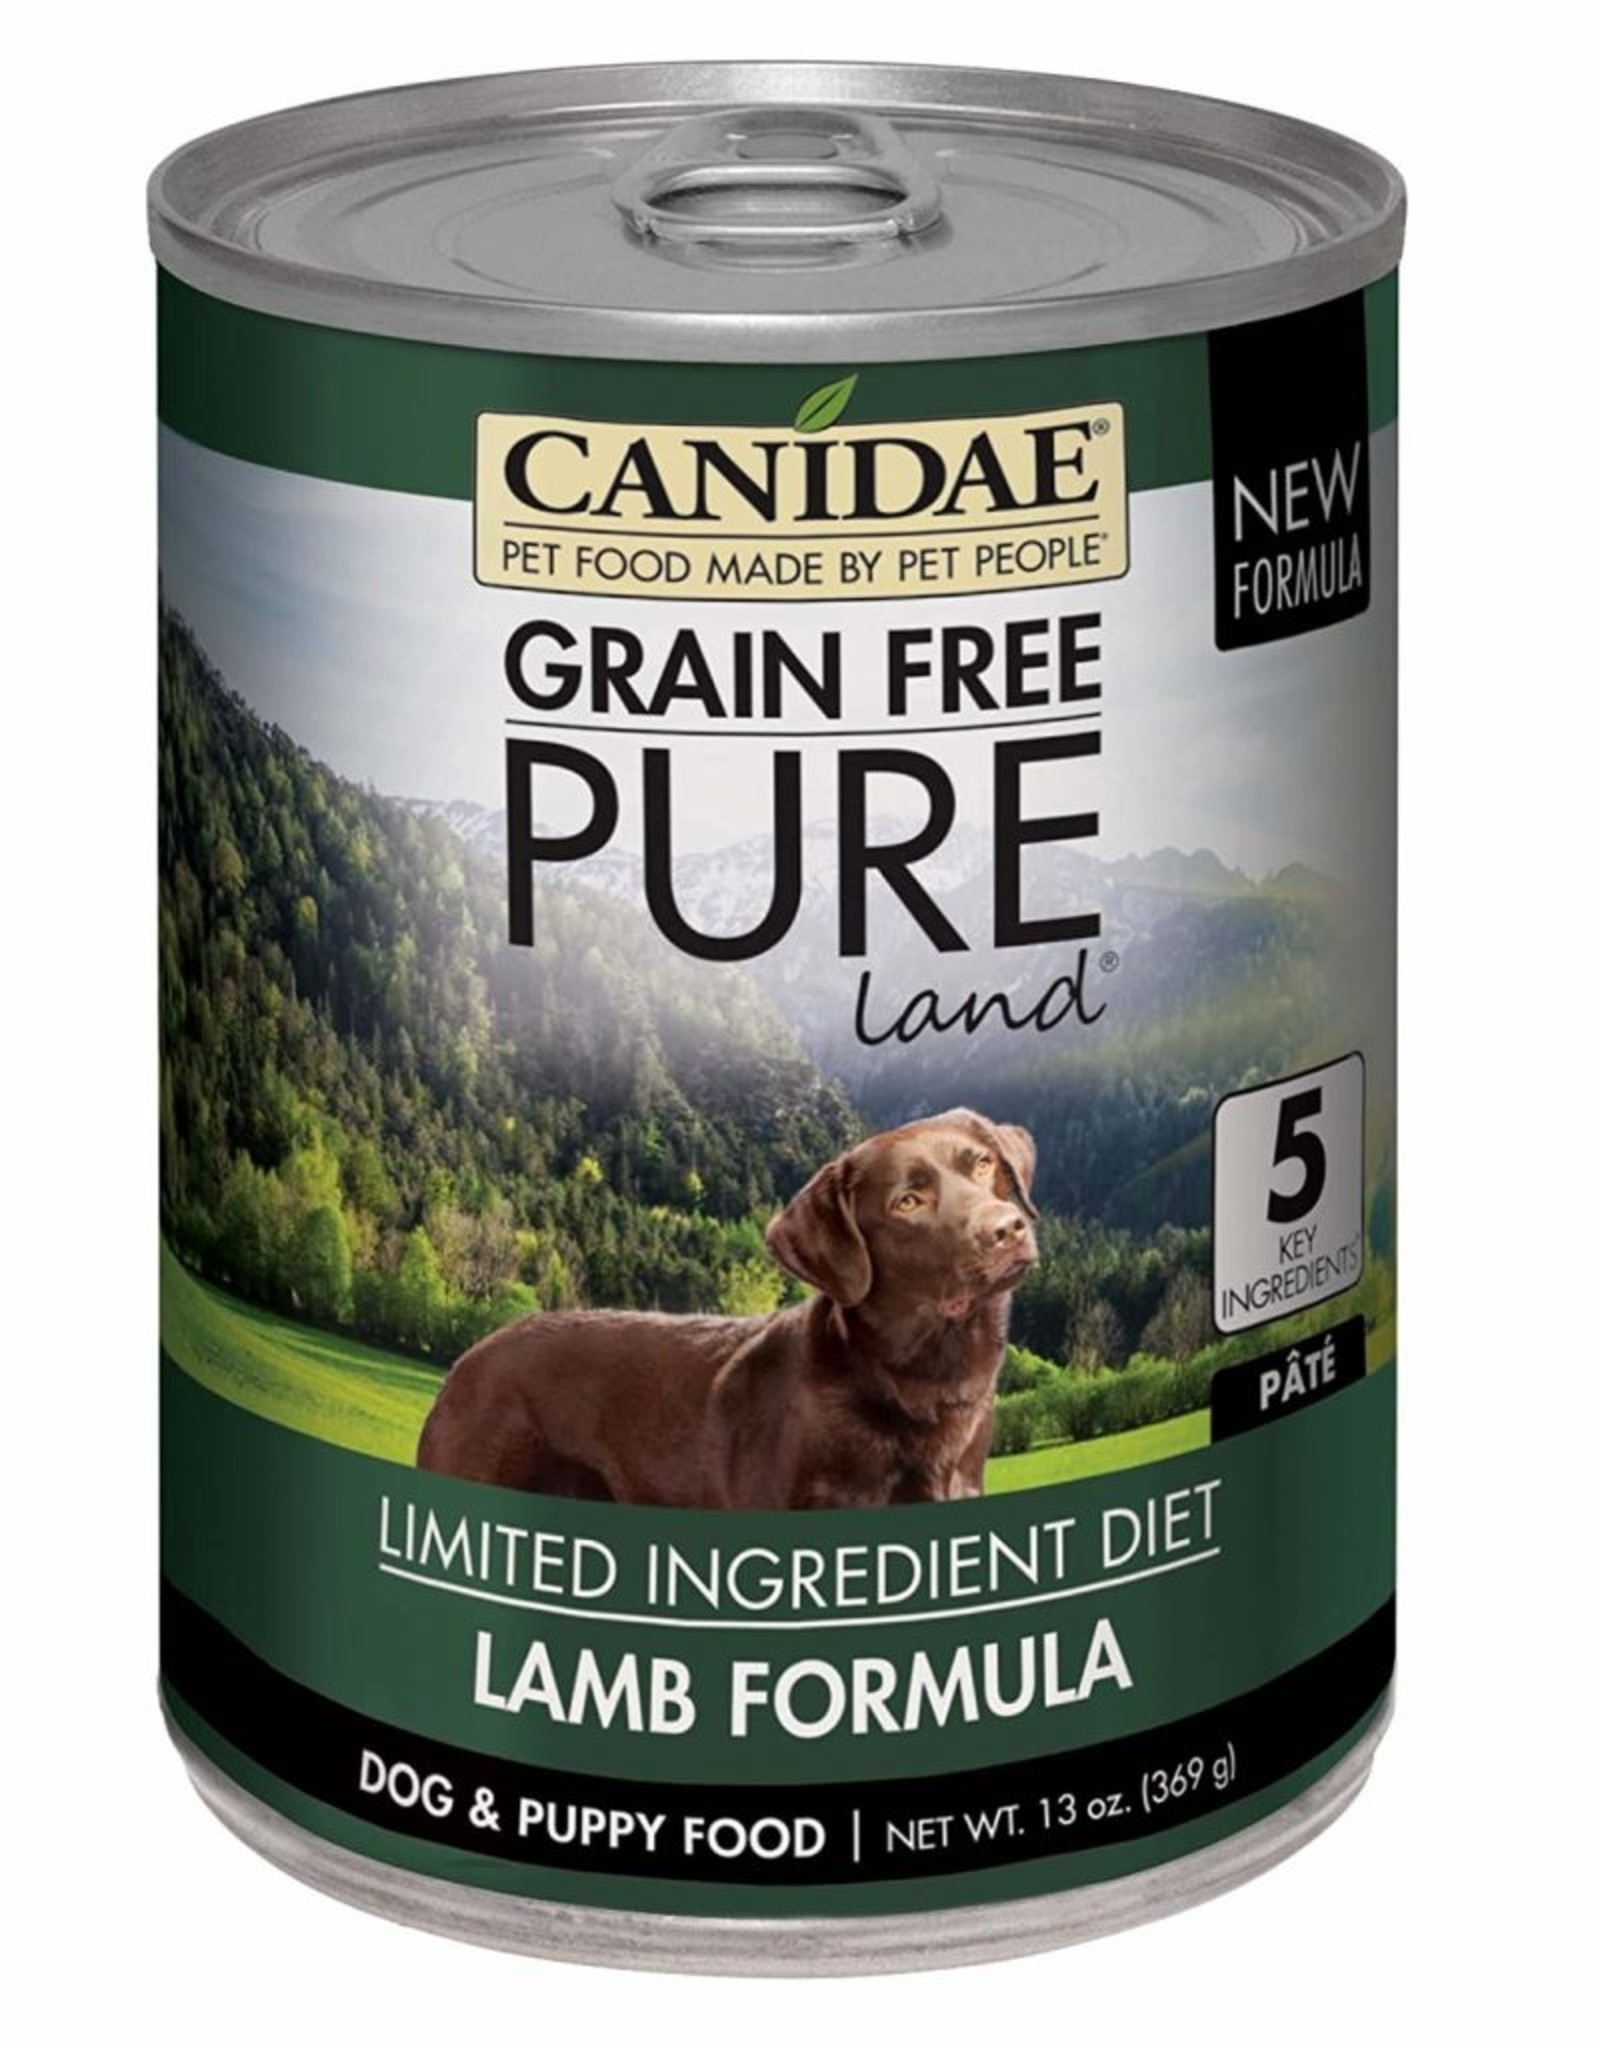 CANIDAE PET FOODS CANIDAE DOG CAN PURE LAND LAMB 13OZ CASE OF 12